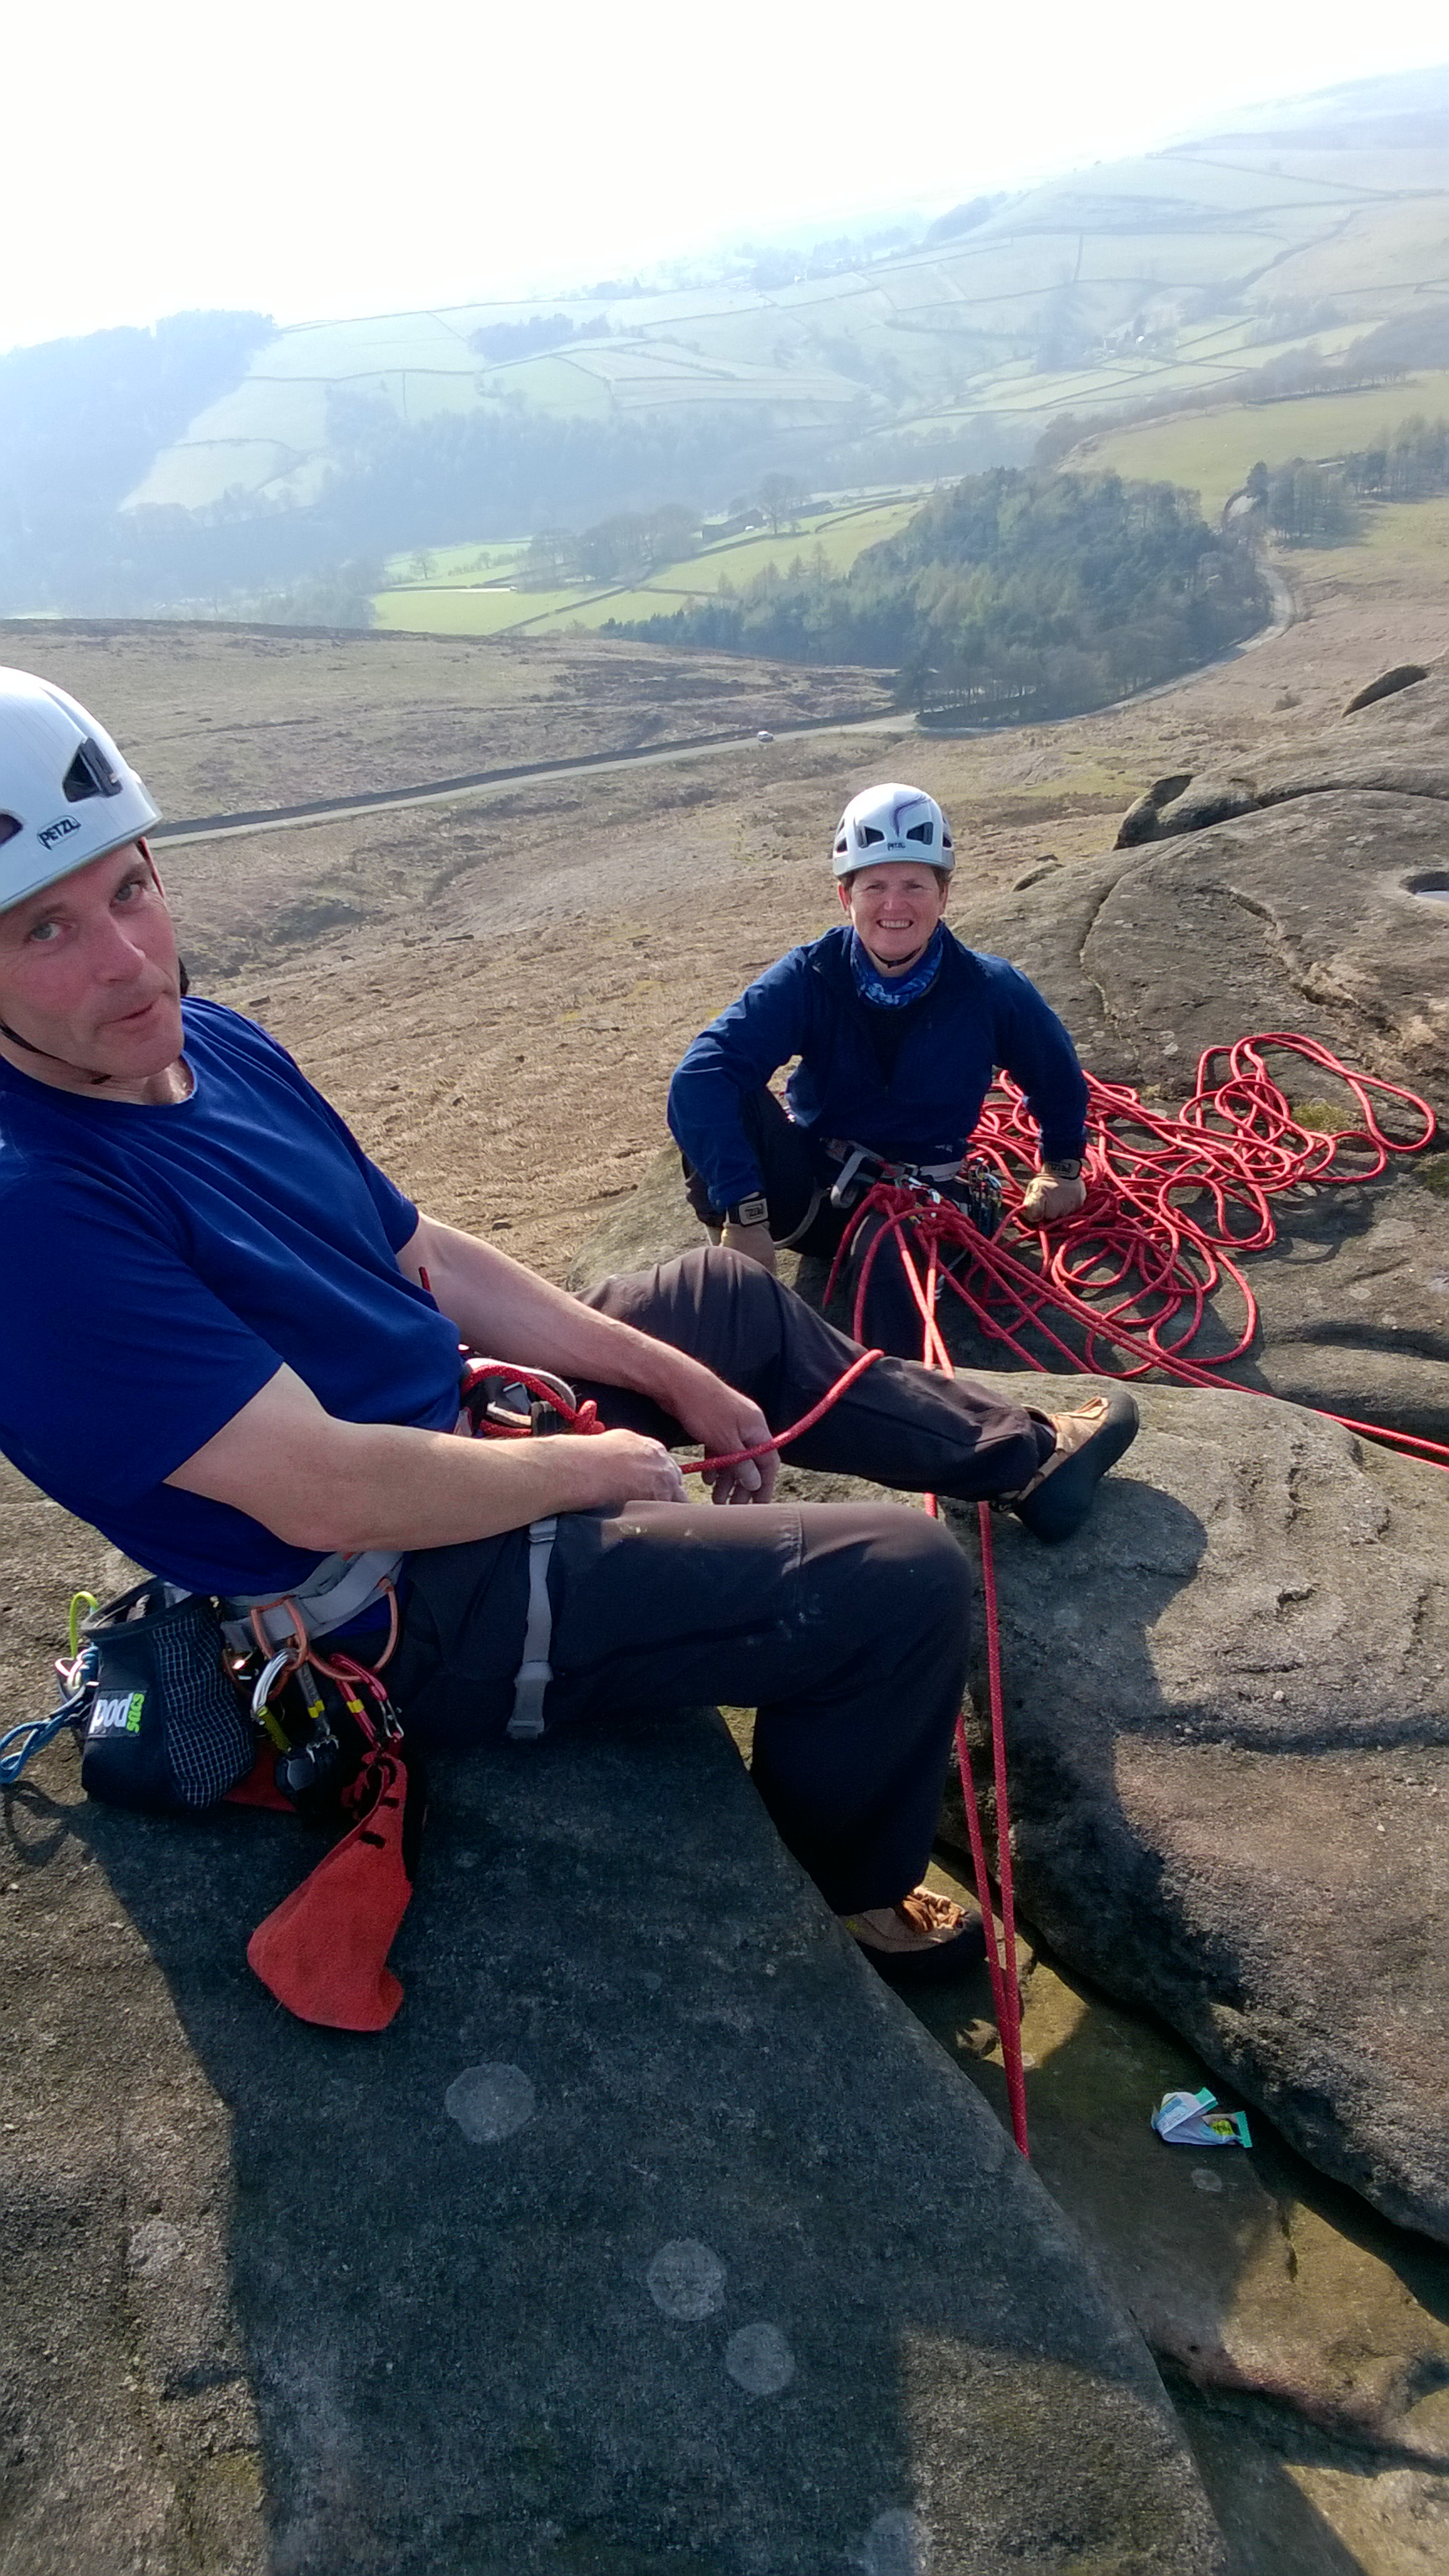 Paul & Claire at Stanage. They started together at 50 and have never looked back!